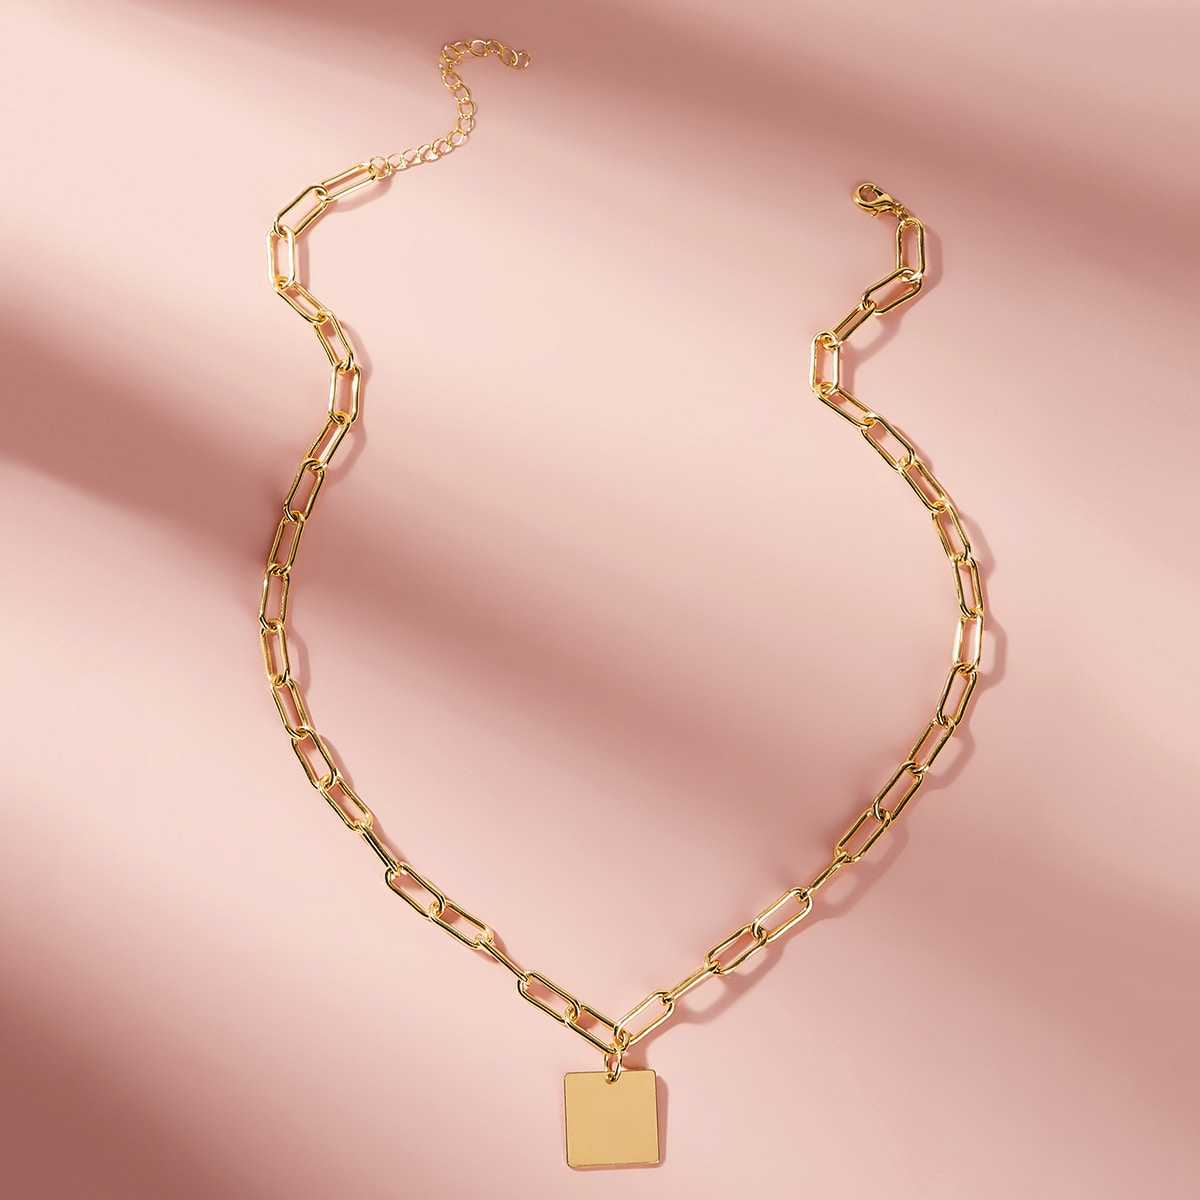 Square Pendant Chain Necklace 1pc in Gold by ROMWE on GOOFASH